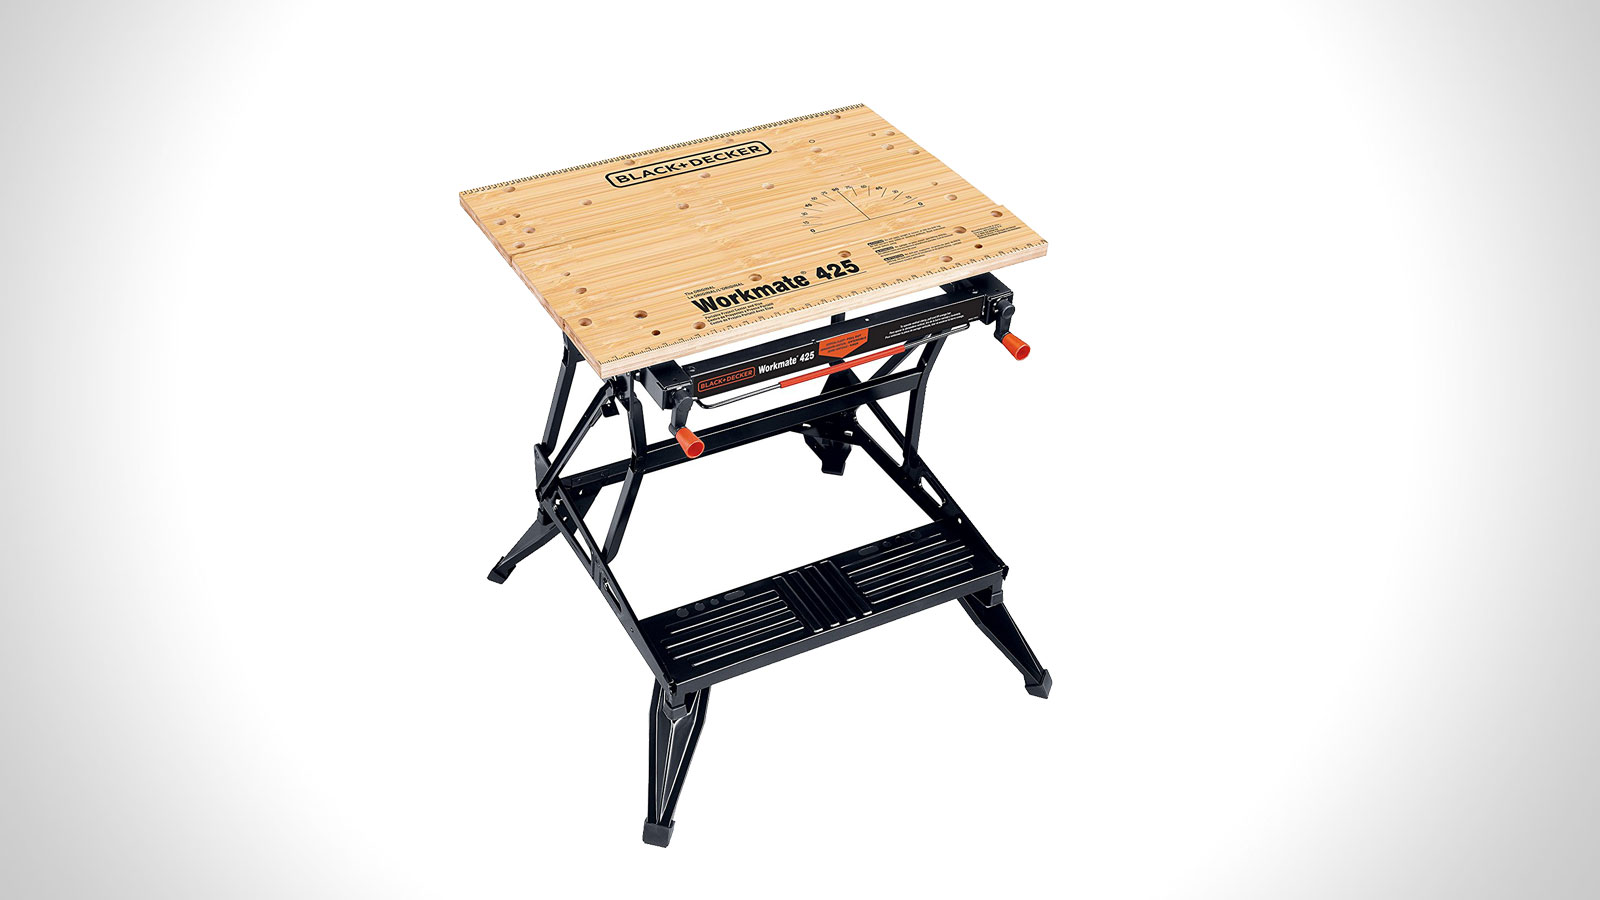 Black & Decker Workmate   gifts for men   the best tool gift ideas